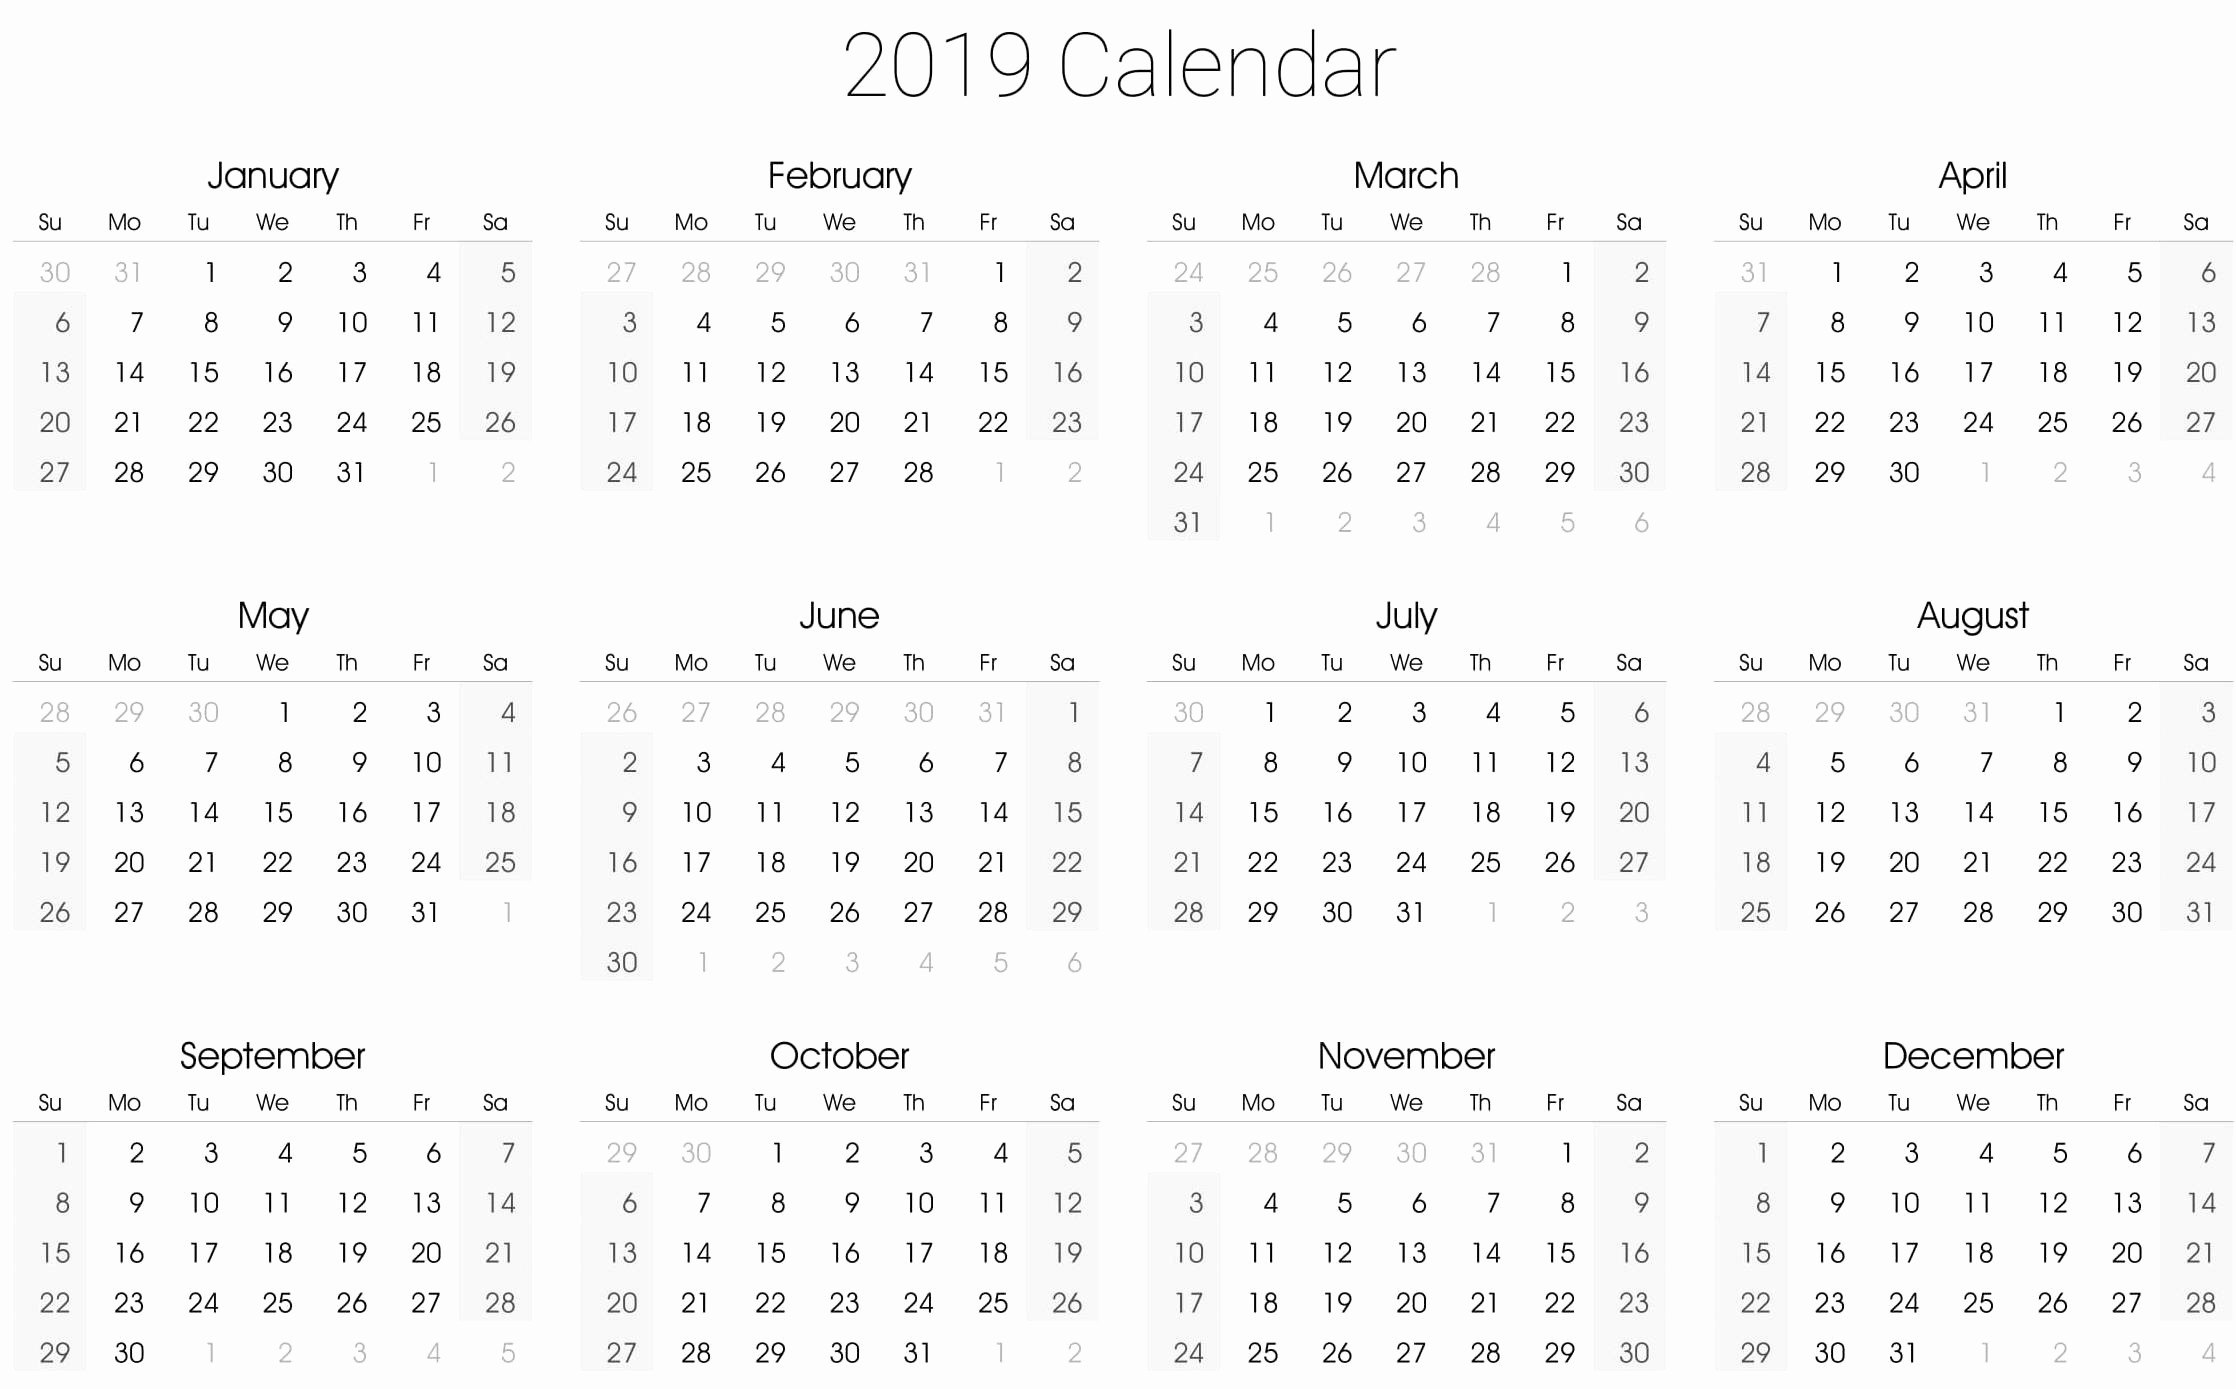 2019 Yearly Calendar One Page Awesome 2019 Yearly Calendar Template Vertical